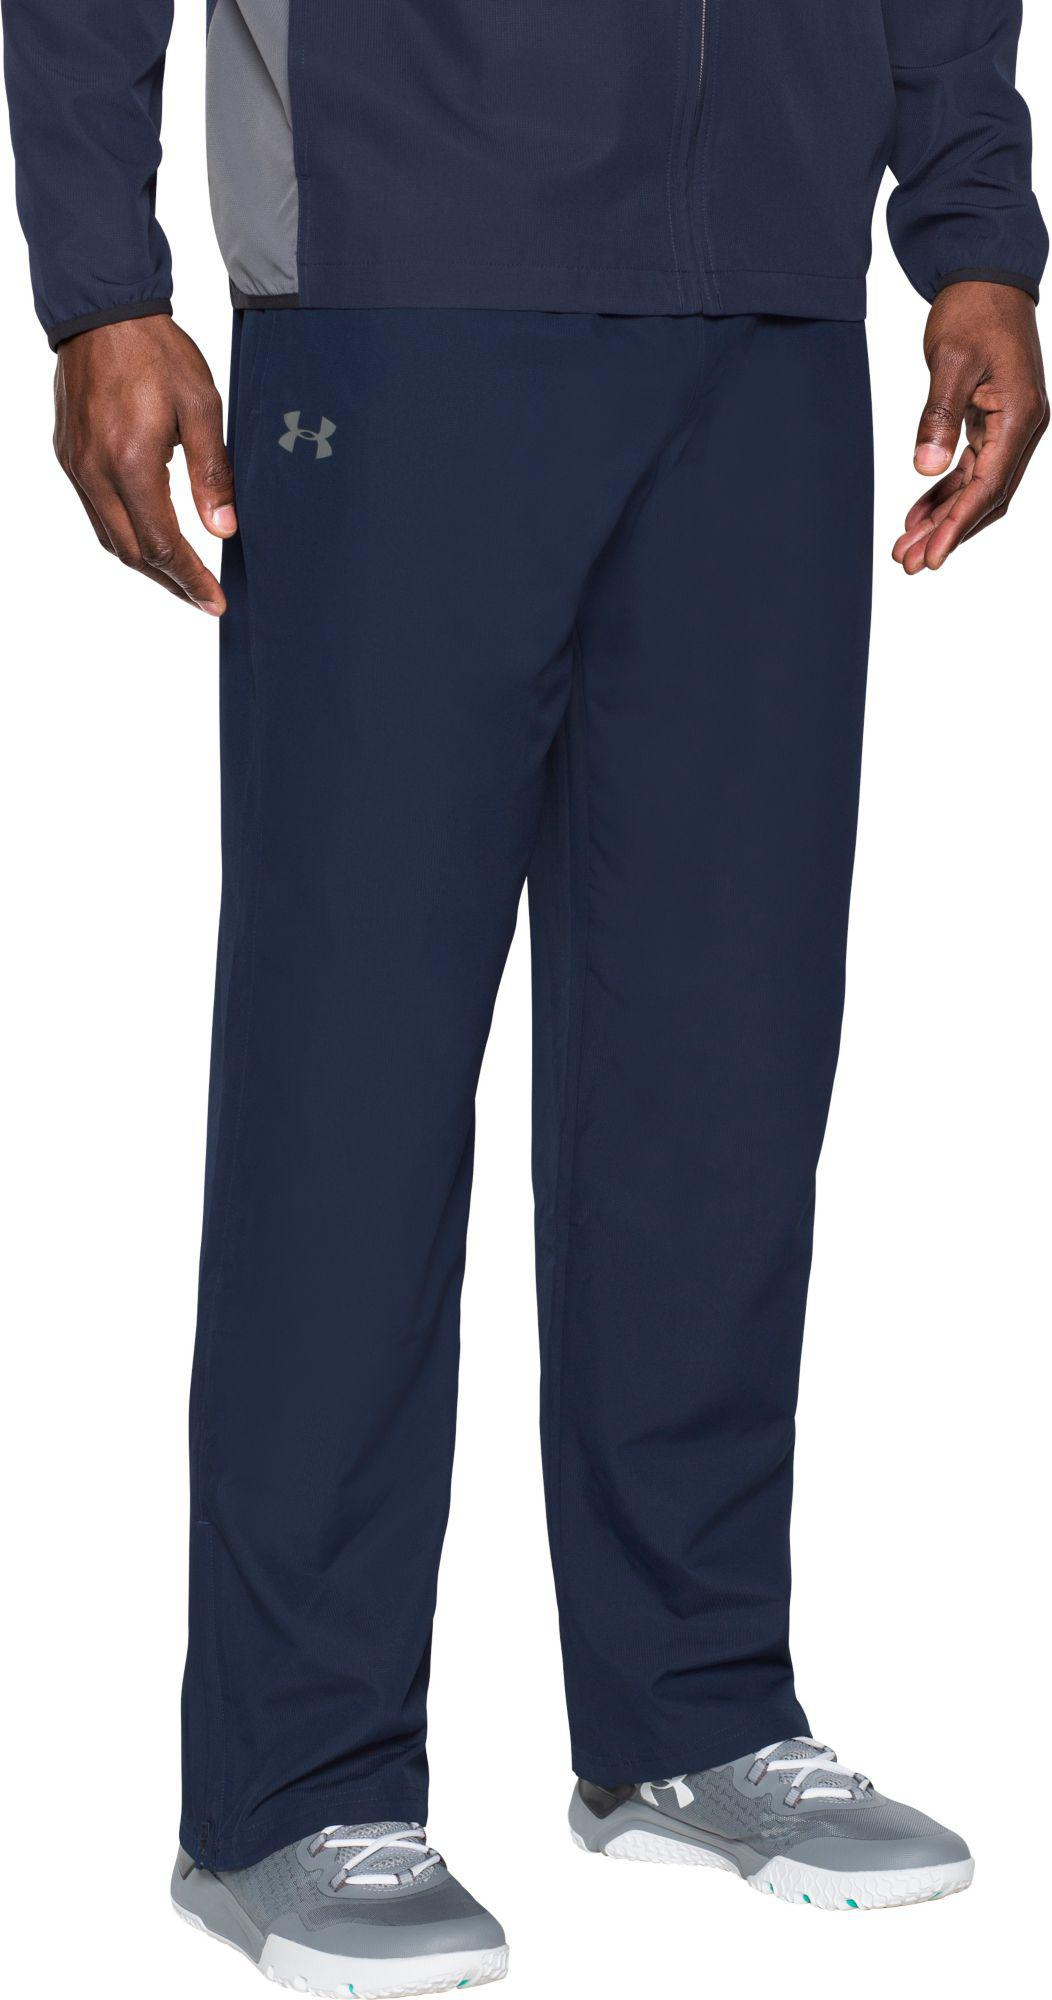 1d570ad77649 Lyst - Under Armour Vital Warm-up Pants in Blue for Men